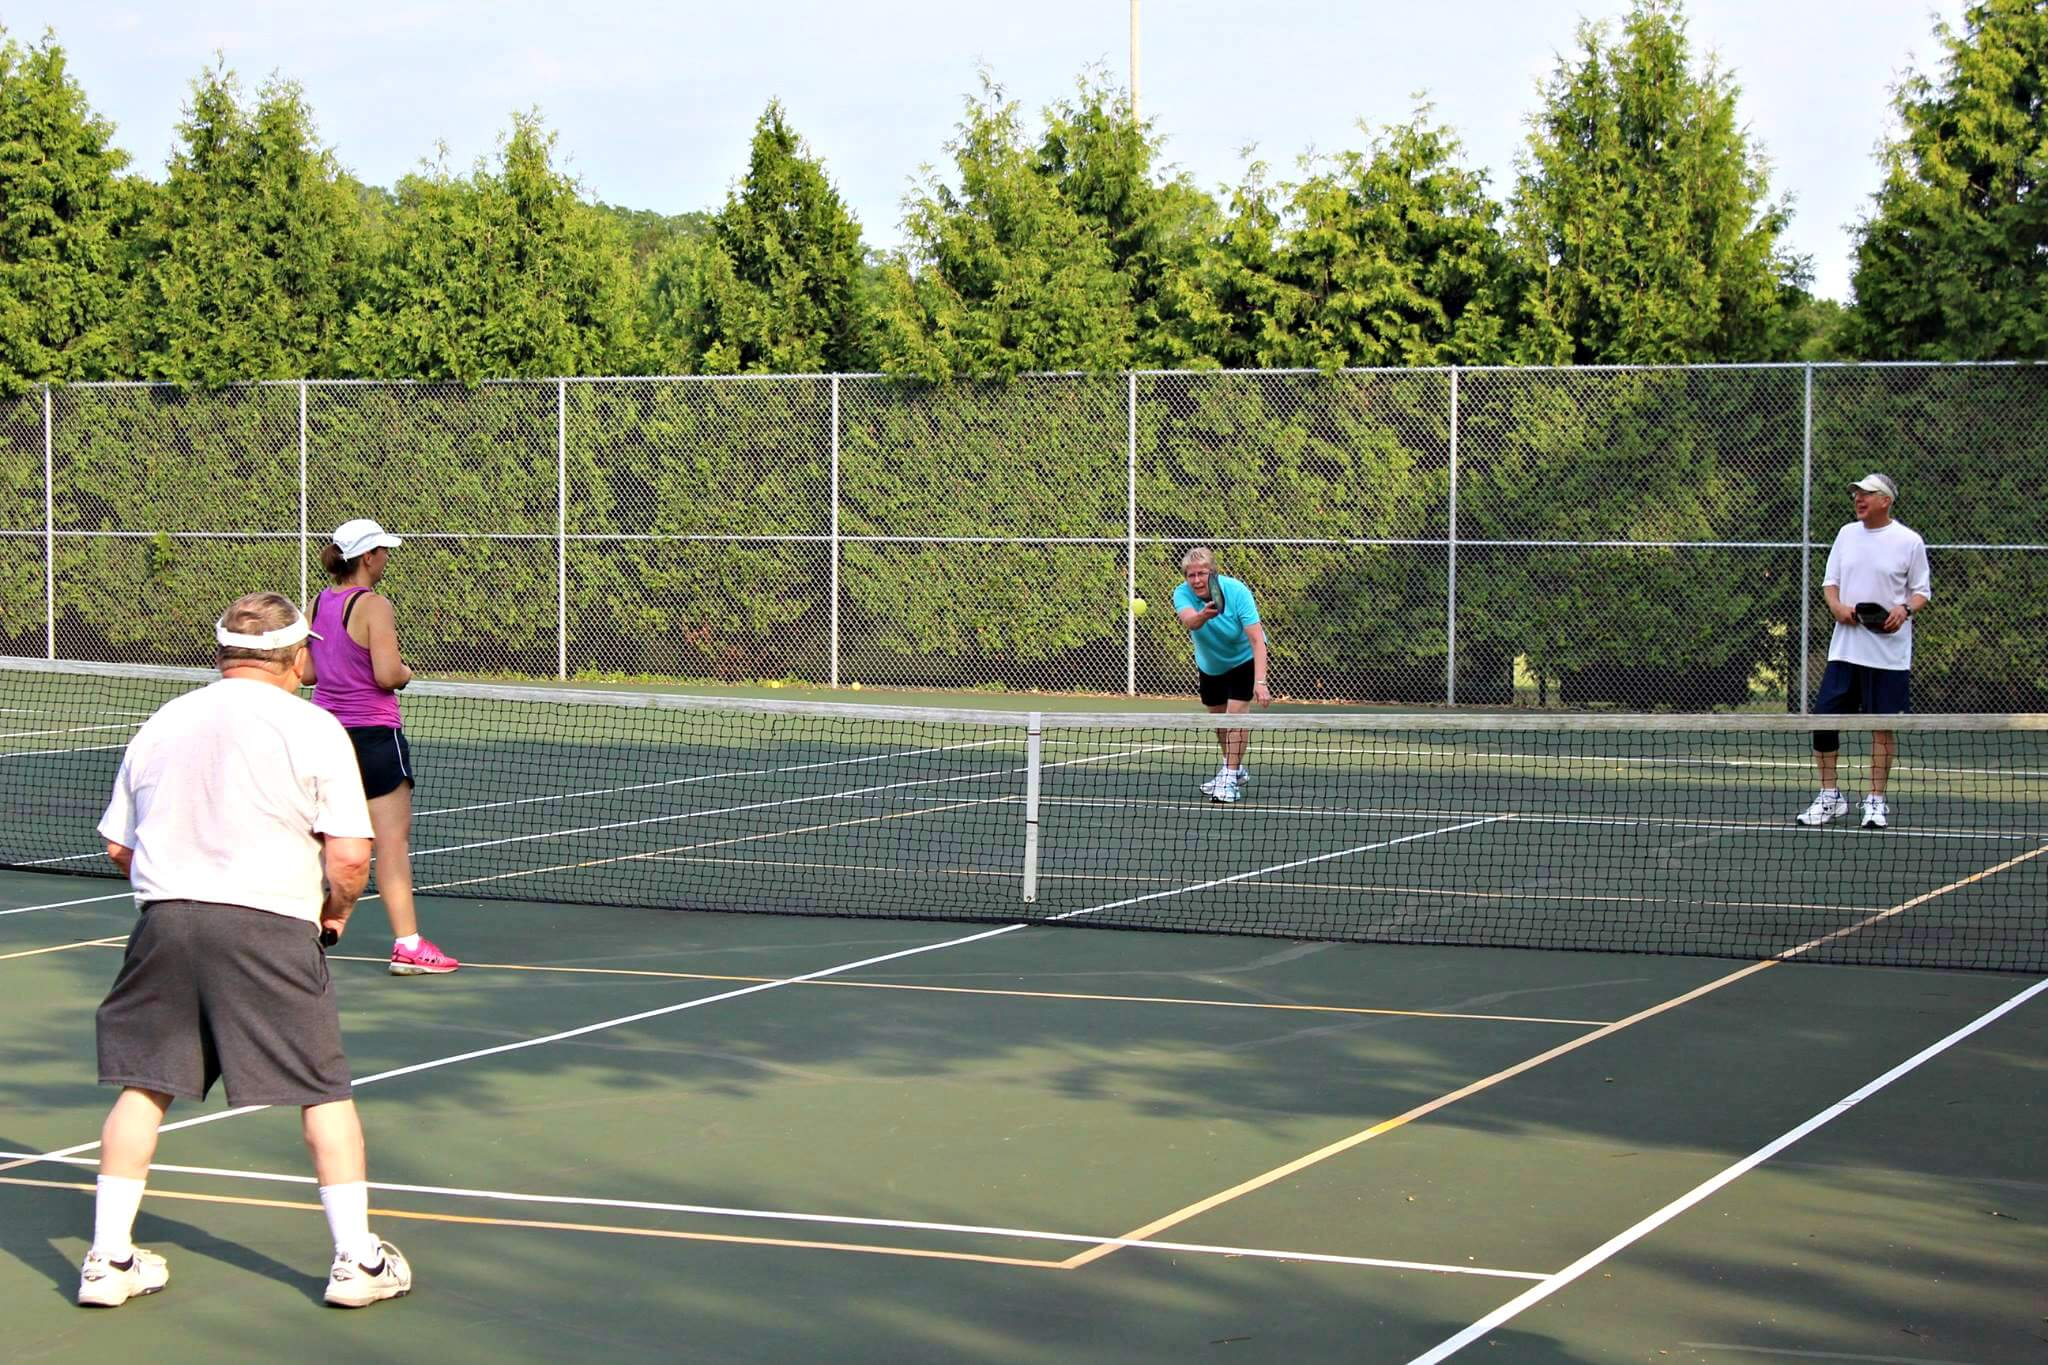 Pickleball players, Summer 2016. Photo by Christopher Rabuck.